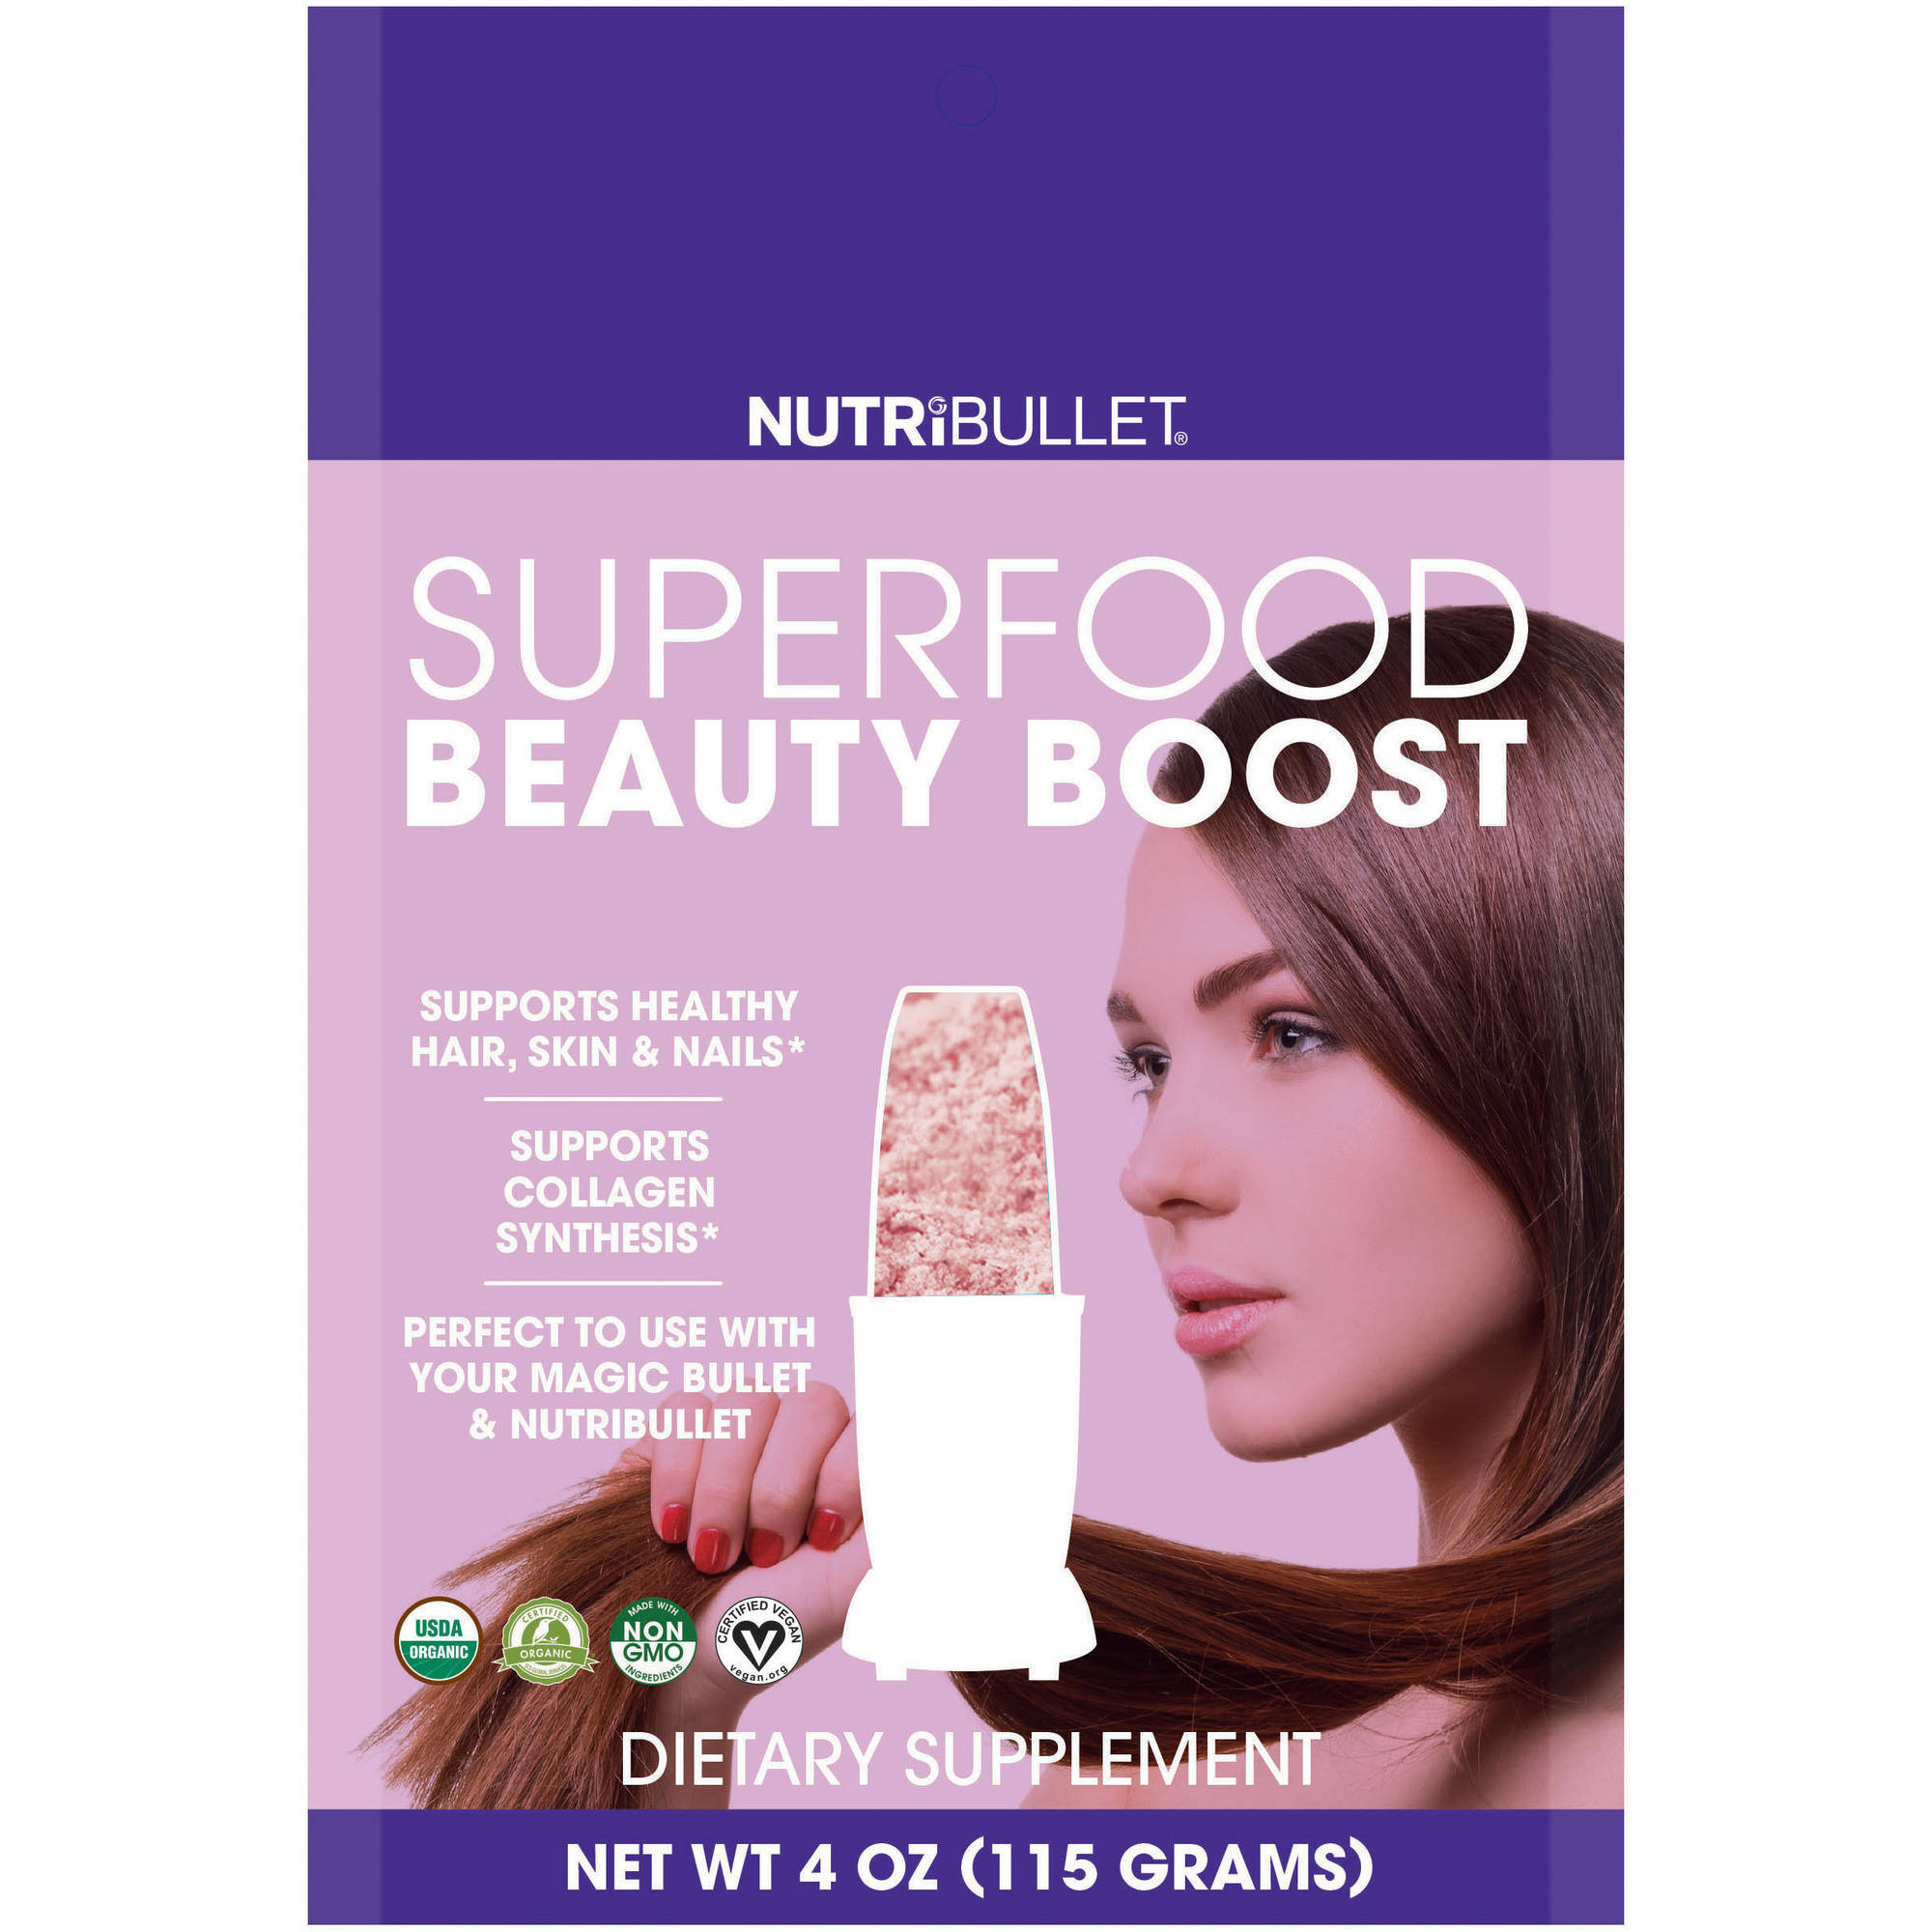 NutriBullet Superfood Beauty Boost